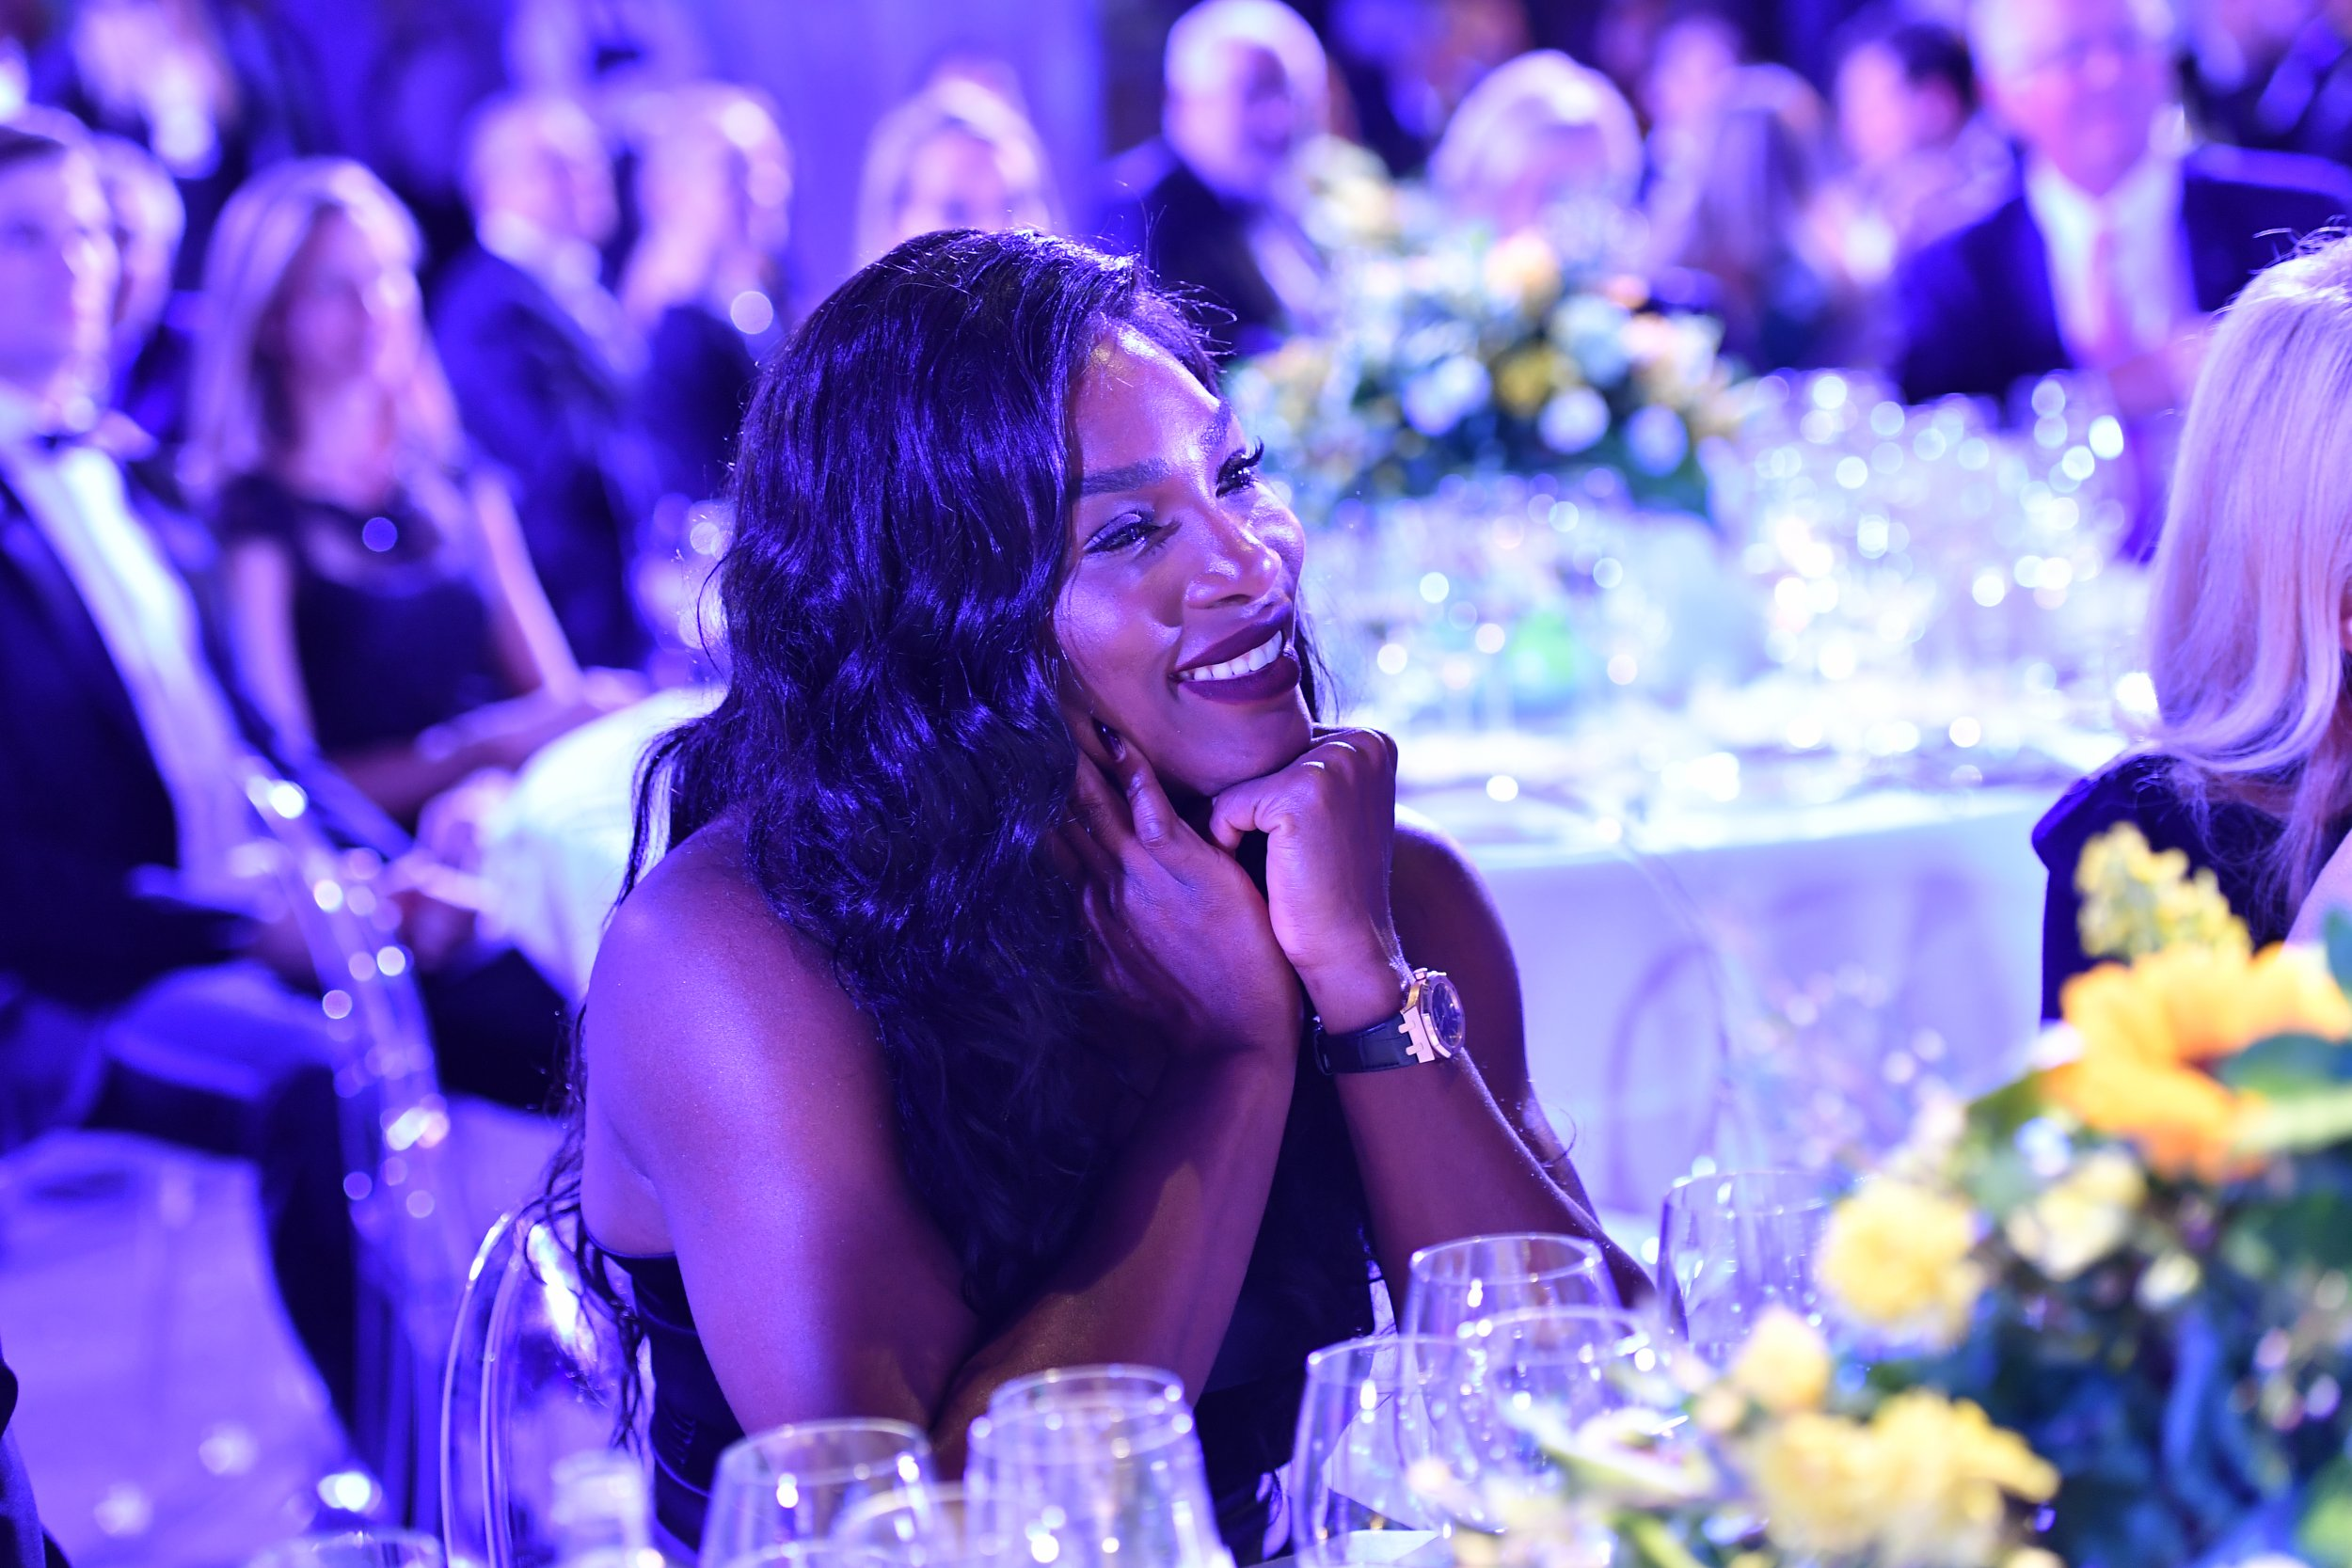 Tennis professional Serena Williams.